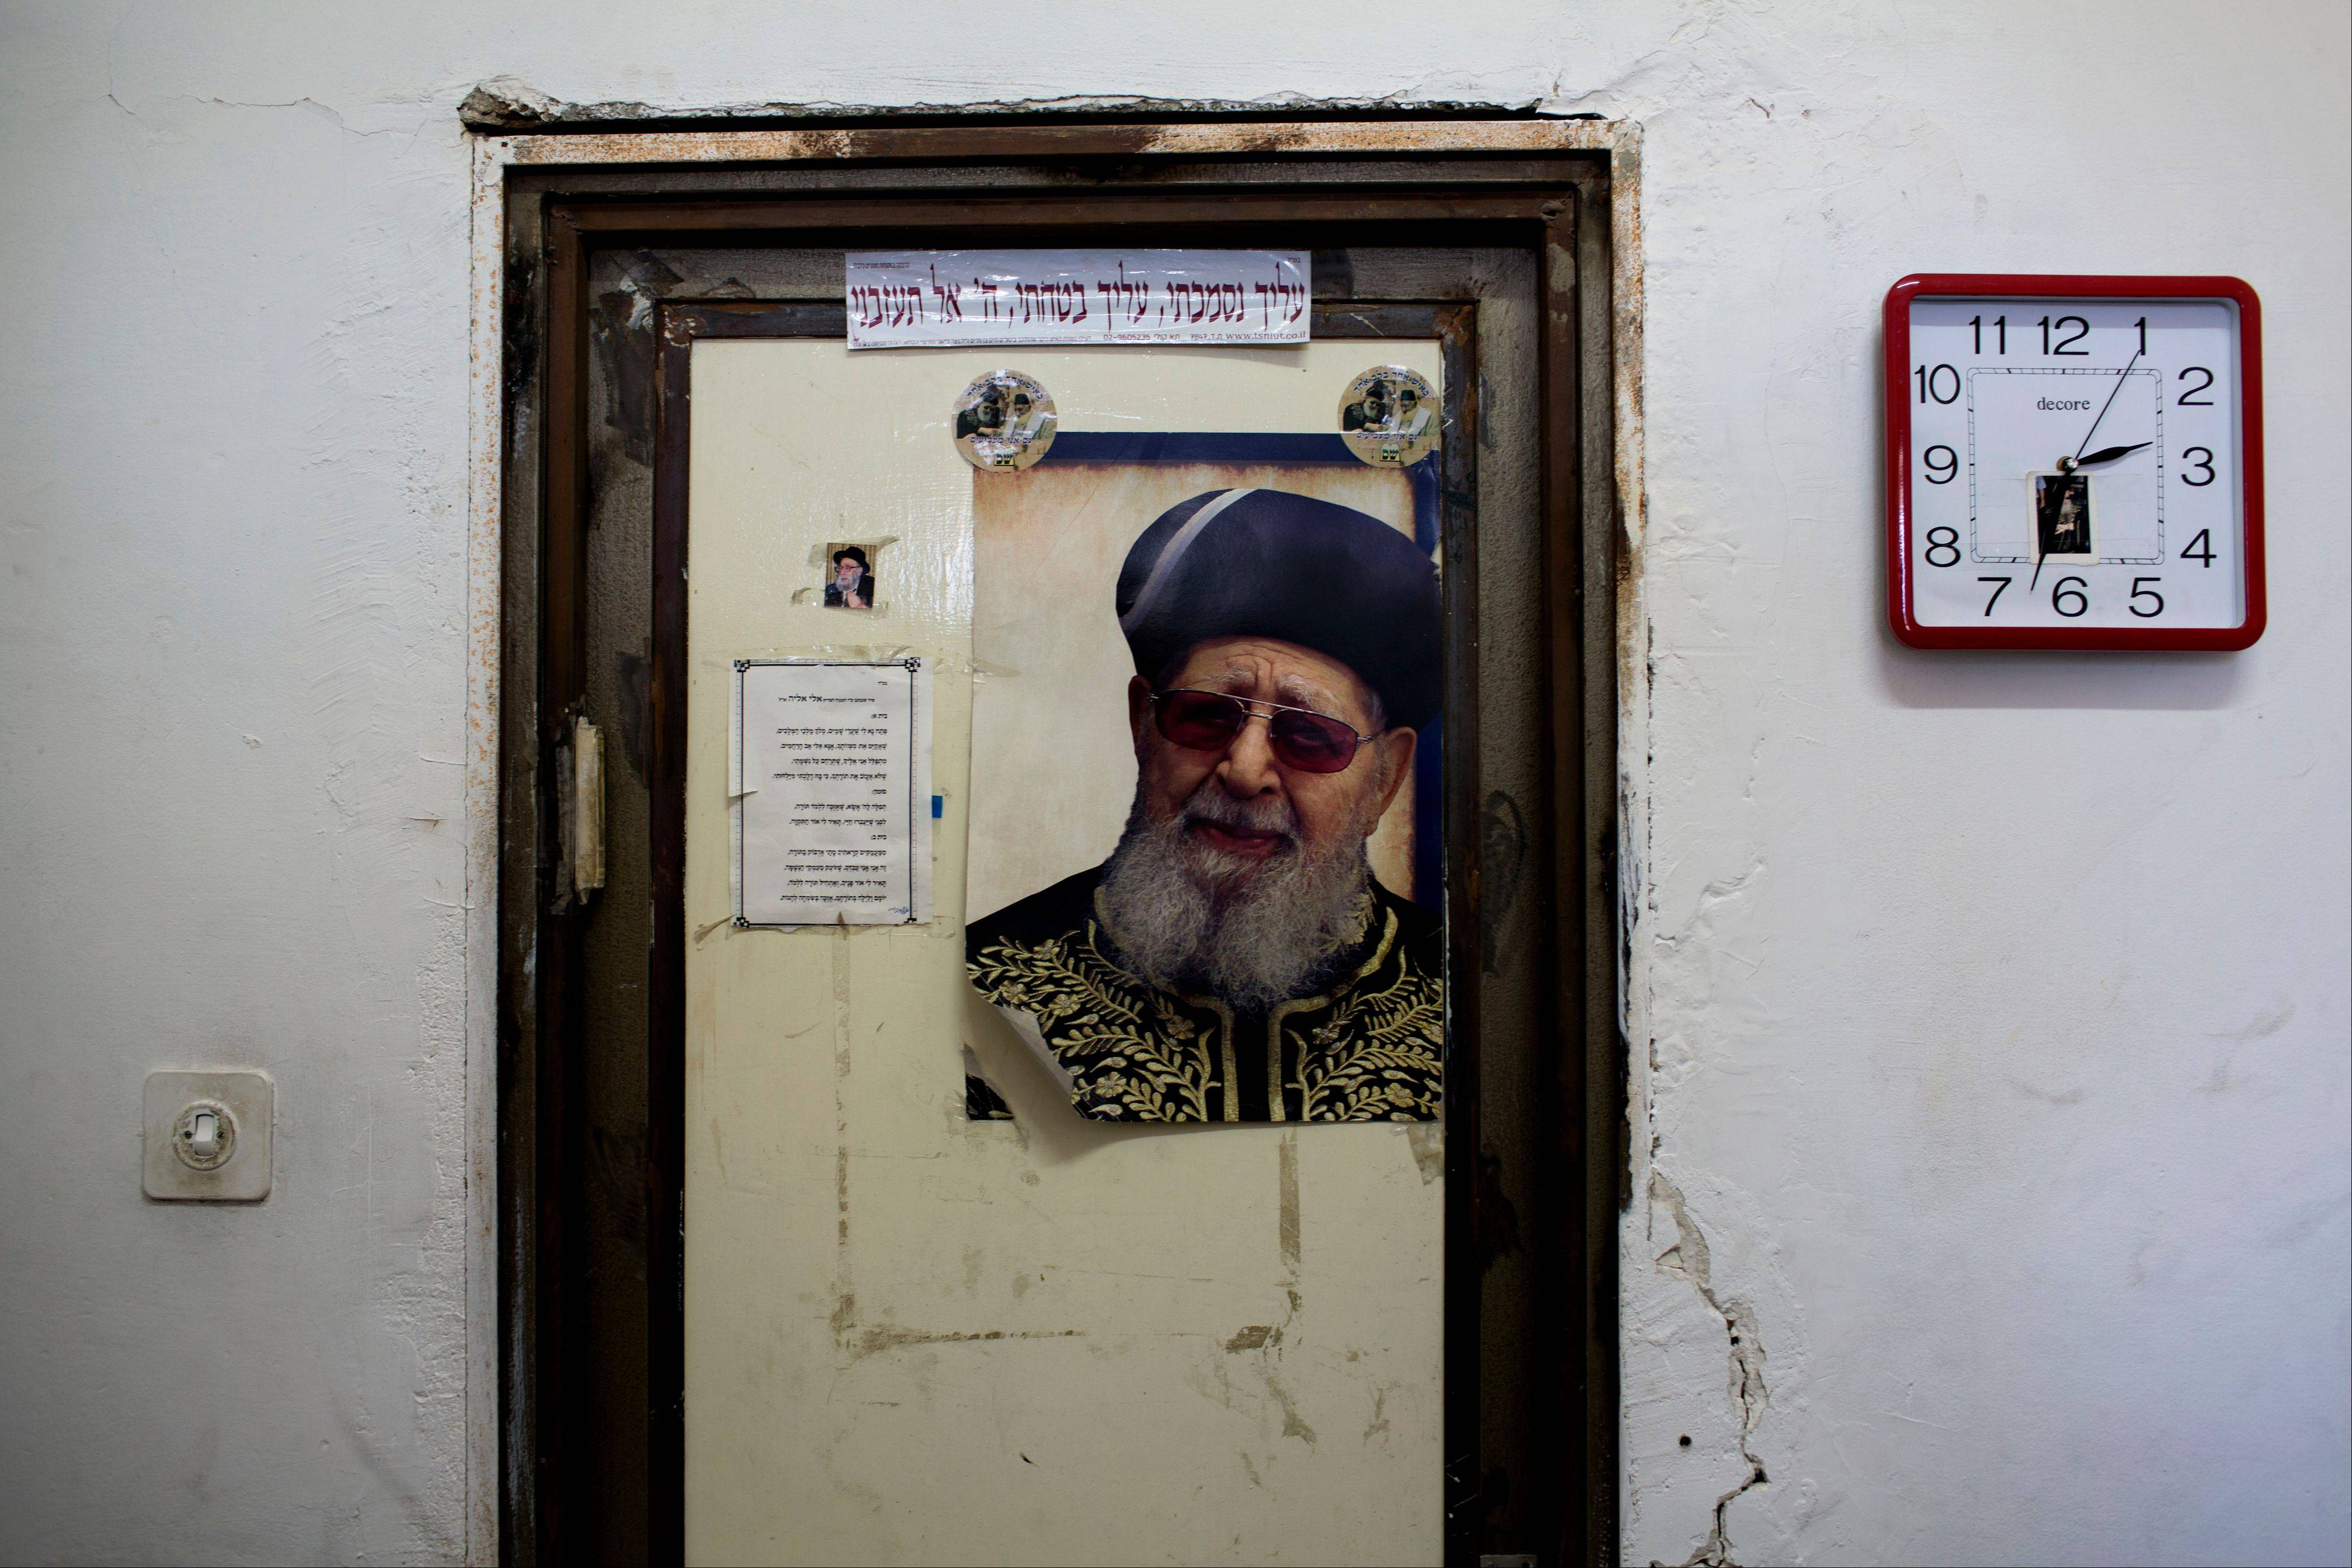 A portrait of Rabbi Ovadia Yosef hangs on a door in a yeshiva during his funeral in Jerusalem, Monday, Oct. 7, 2013. Rabbi Yosef, 93, a religious scholar and spiritual leader of Israel's Sephardic Jews, transformed his downtrodden community of immigrants from North Africa and Arab nations and their descendants into a powerful force in Israeli politics.